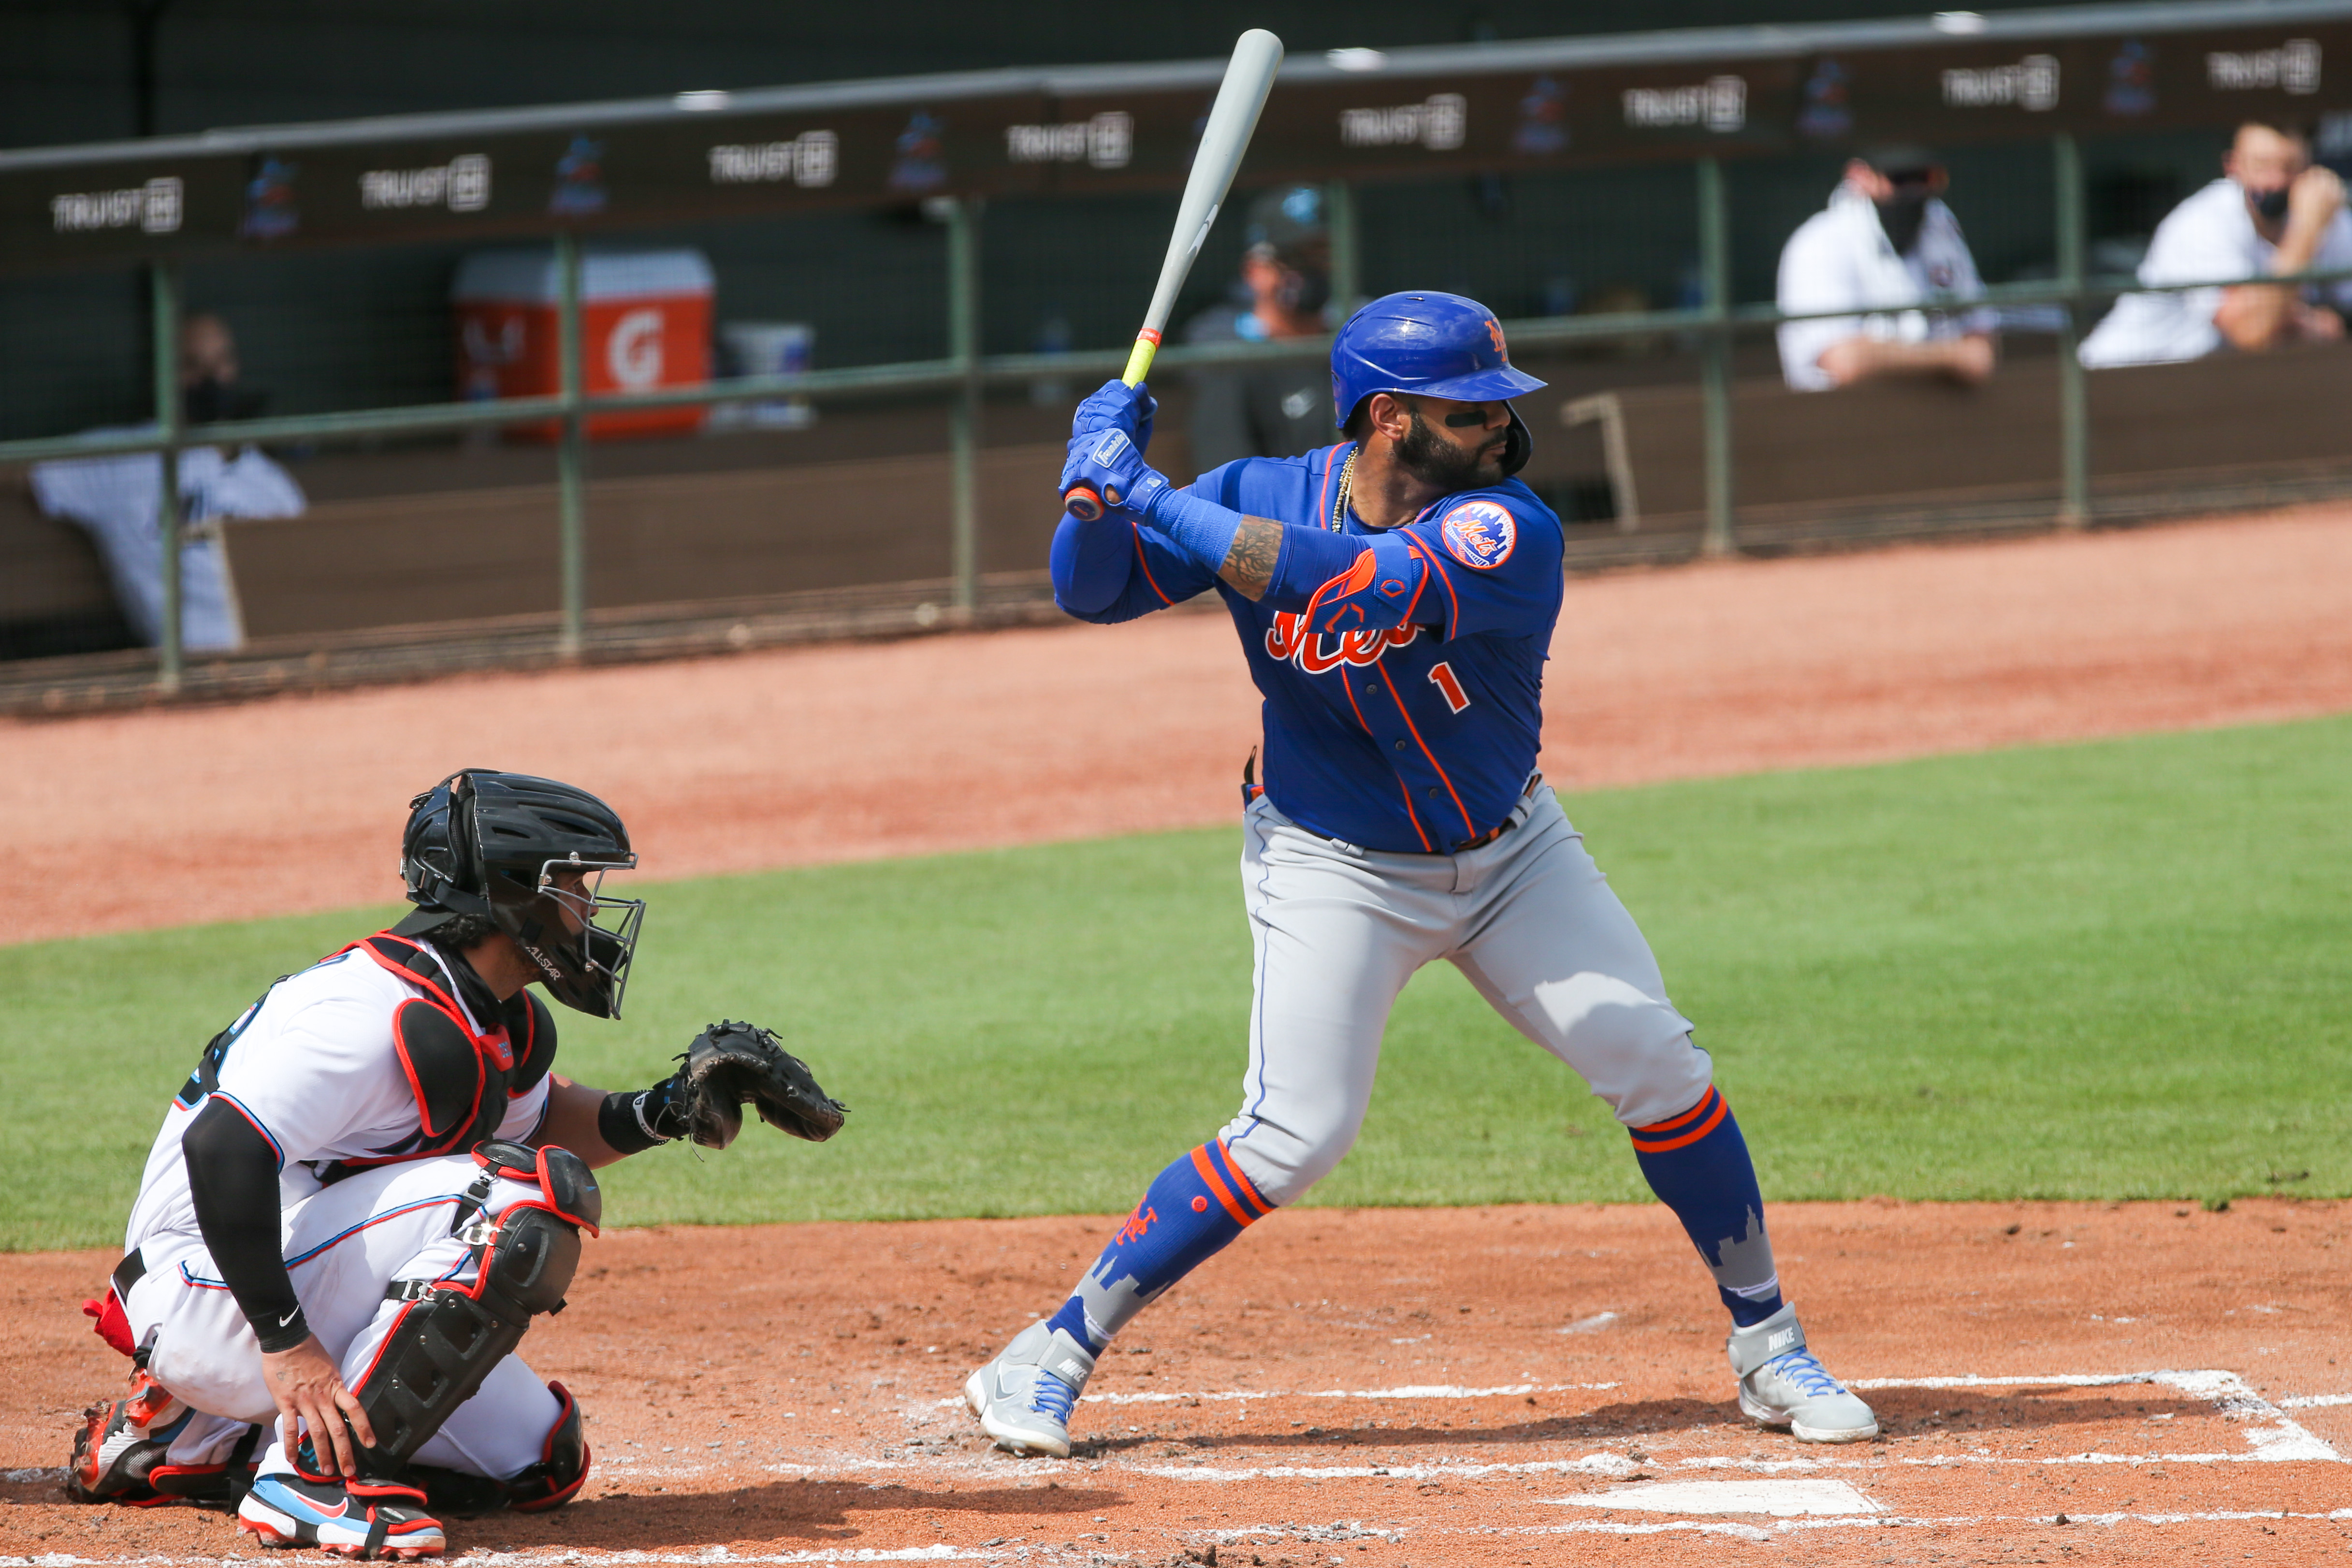 New York Mets second baseman Jonathan Villar (1) stands at the plate against the Miami Marlins in the fourth inning at Roger Dean Chevrolet Stadium.